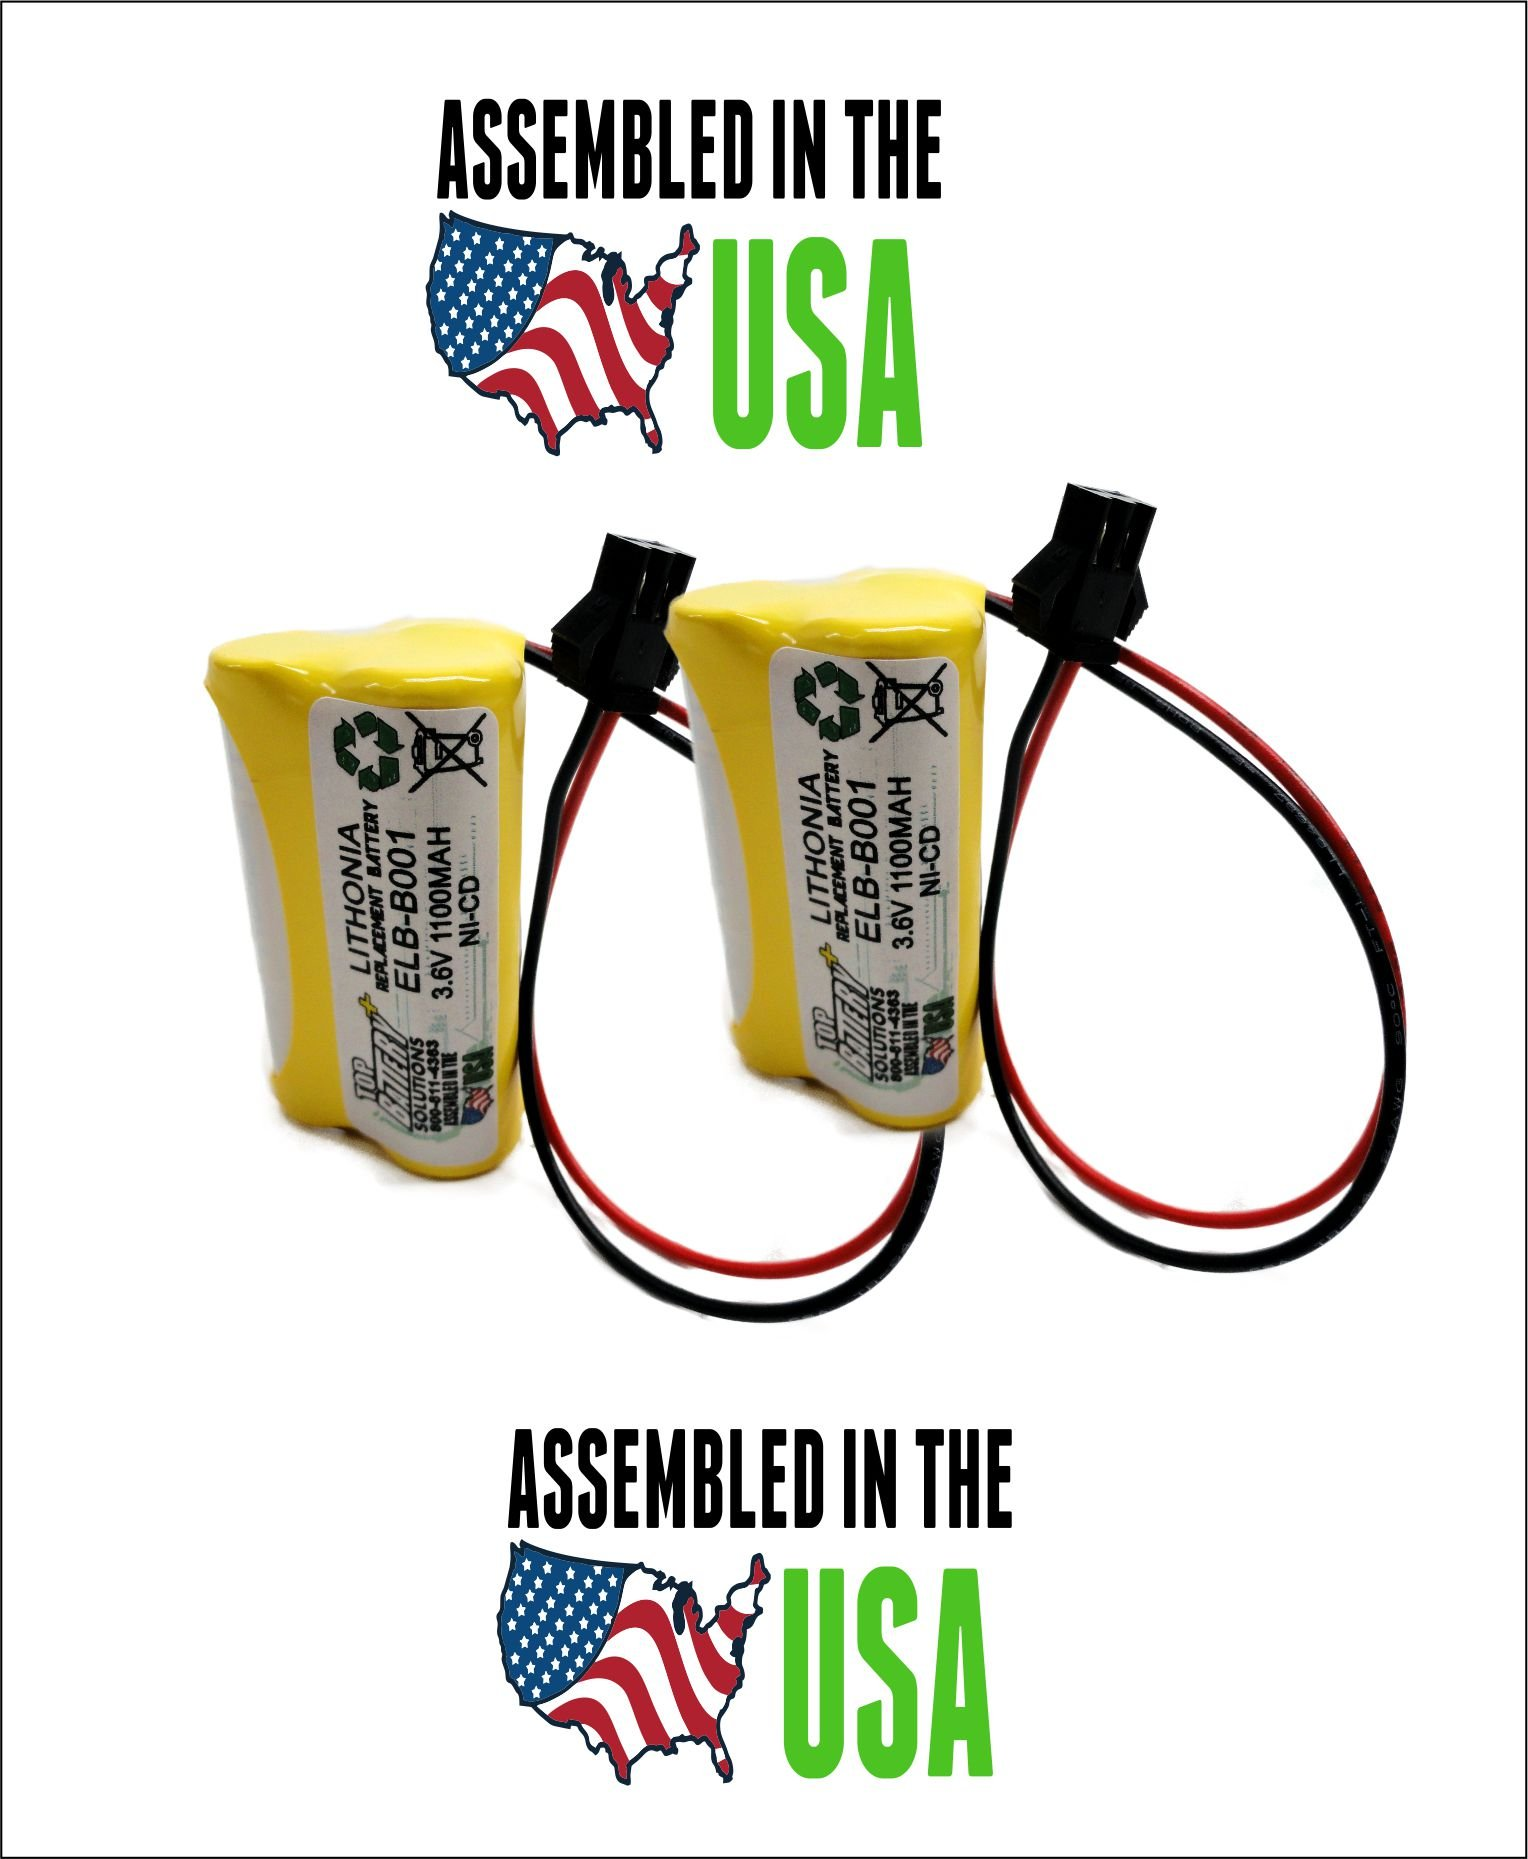 2PC Lithonia ELB B001 Replacement Emergency Light Battery by TOP BATTERY SOLUTIONS